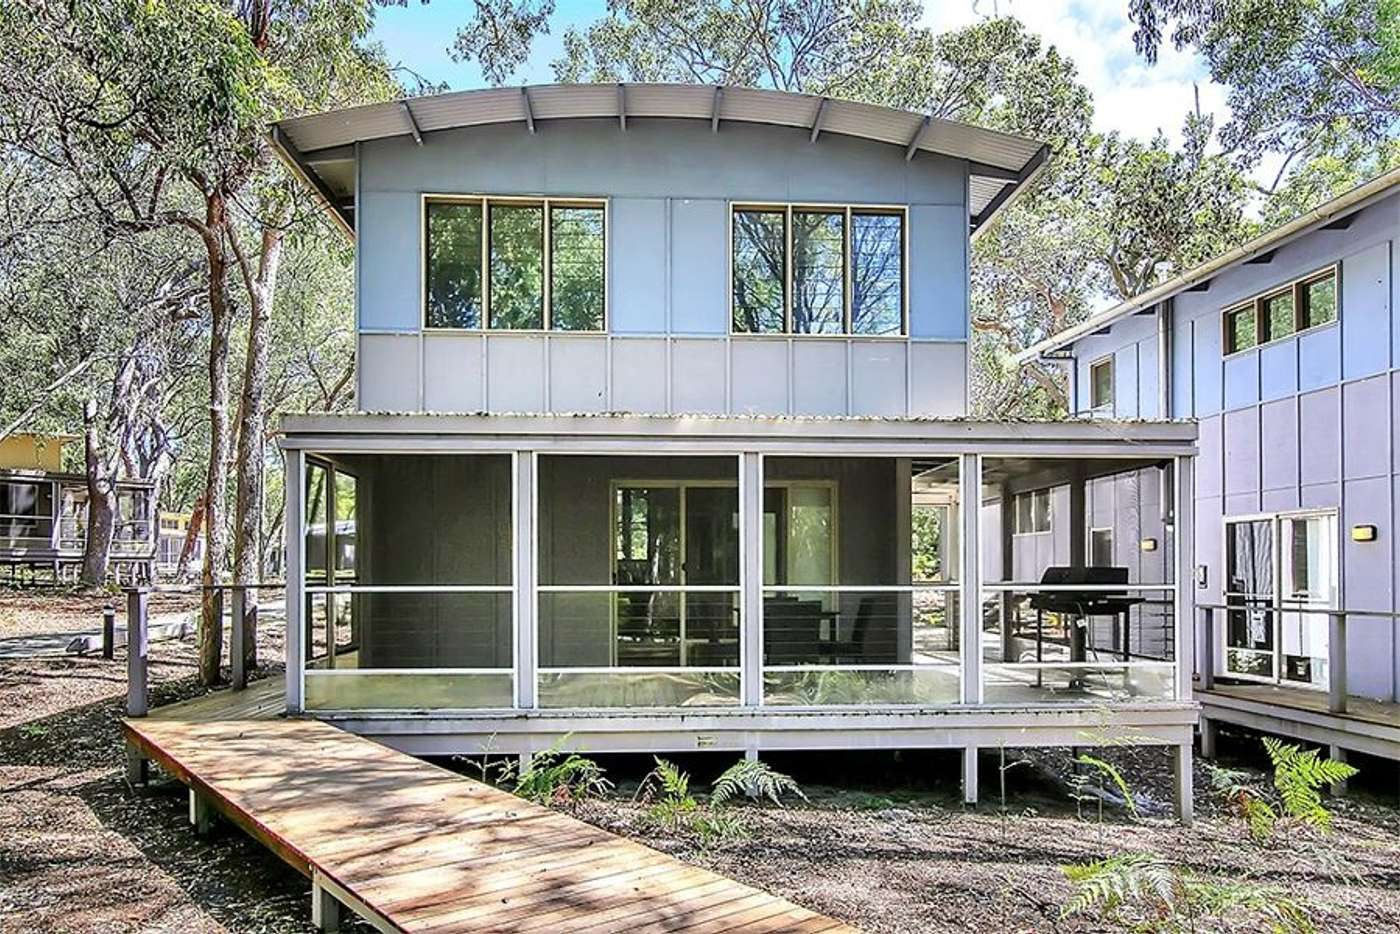 Main view of Homely house listing, 5601 Eco Cabin Couran Cove Resort, South Stradbroke QLD 4216